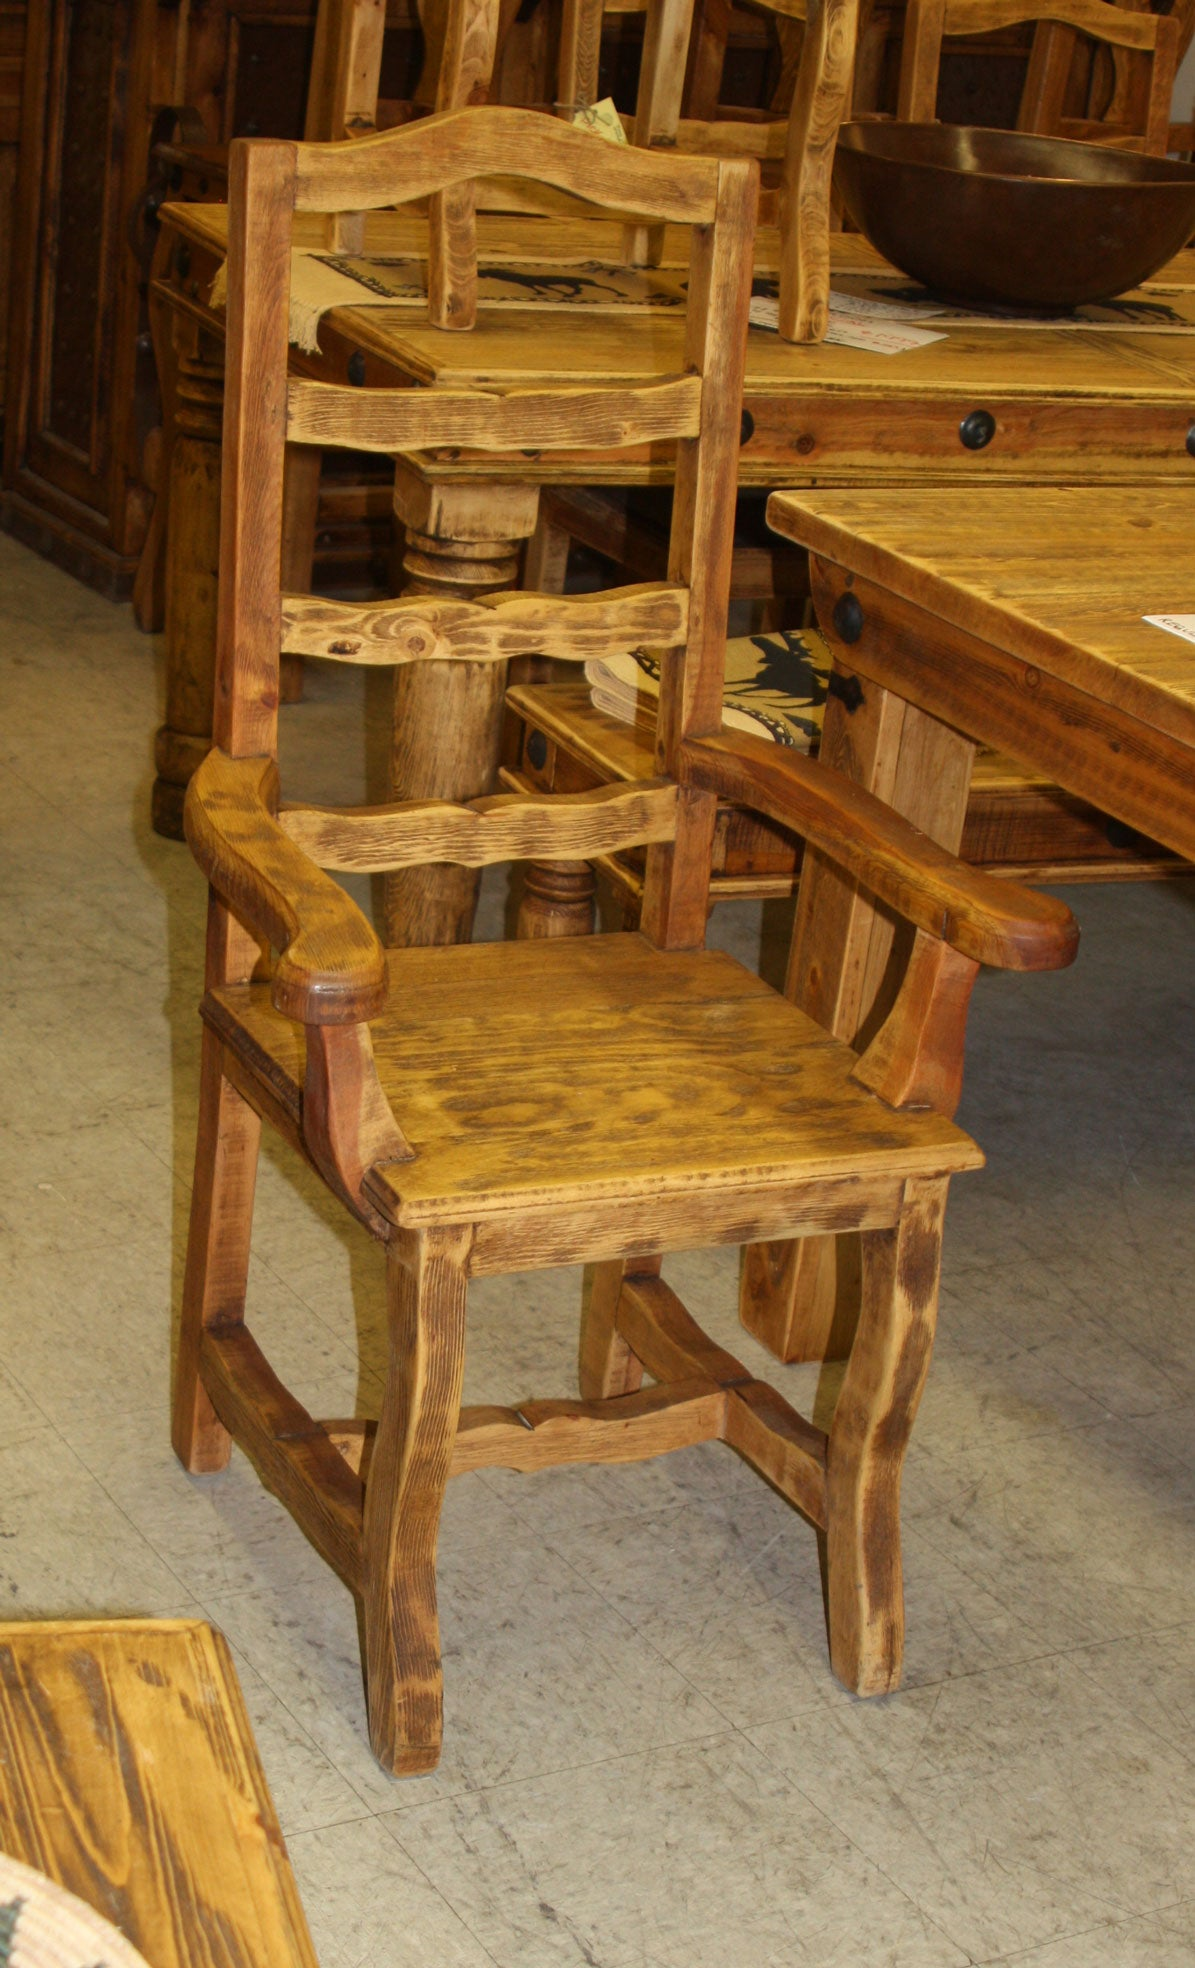 Provenzal Chair with arms